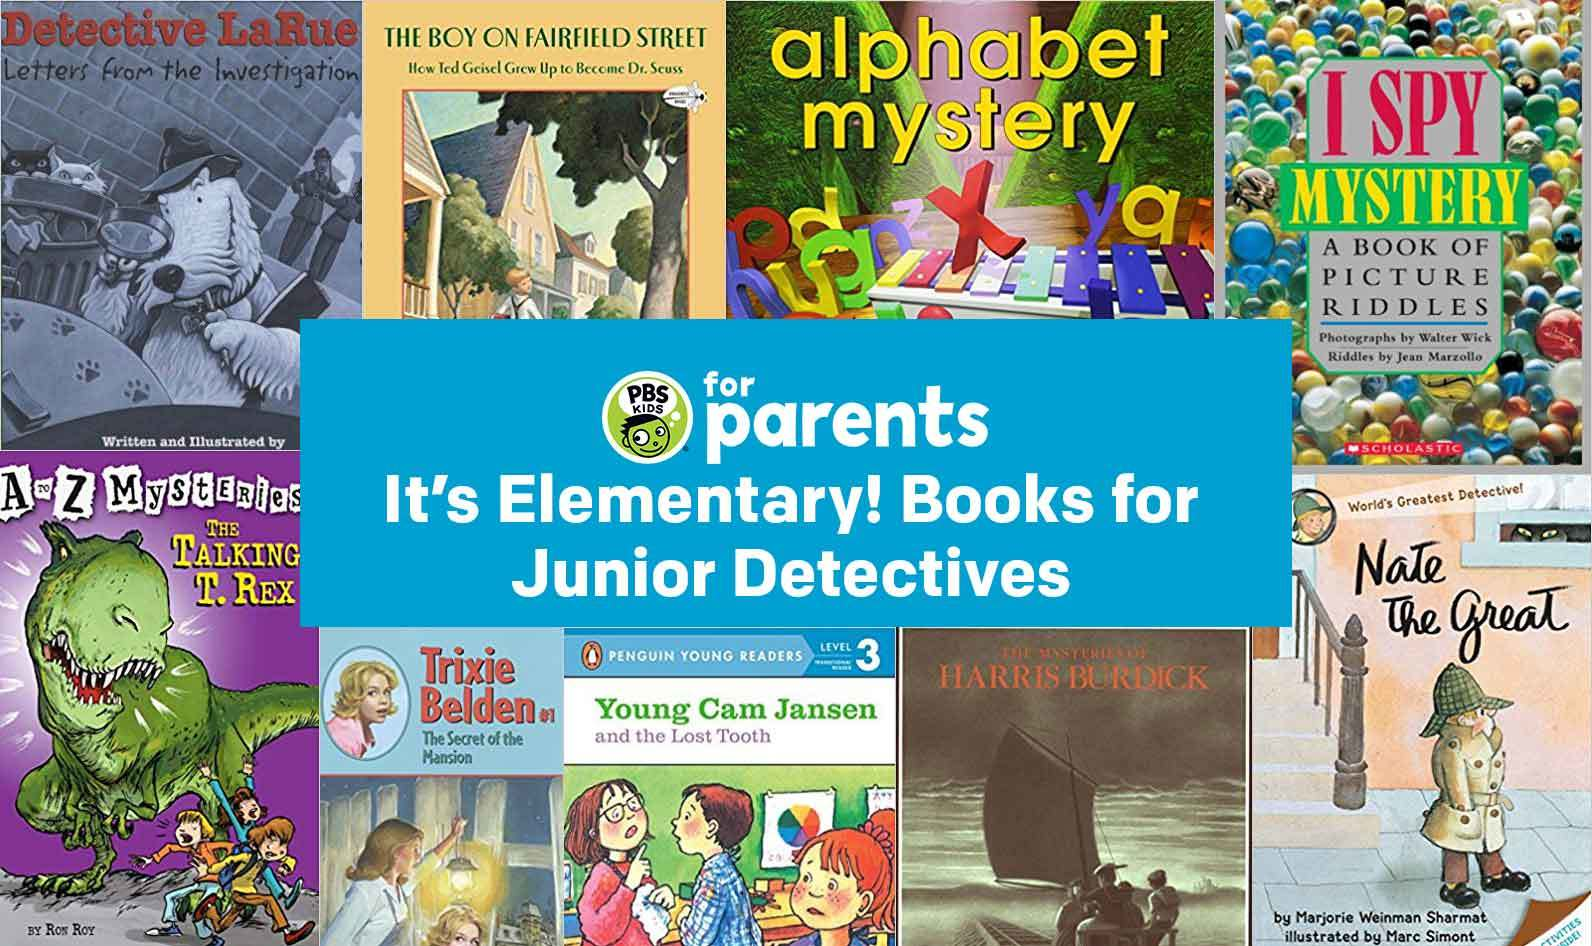 It's Elementary! Books for Junior Detectives… | PBS KIDS for Parents